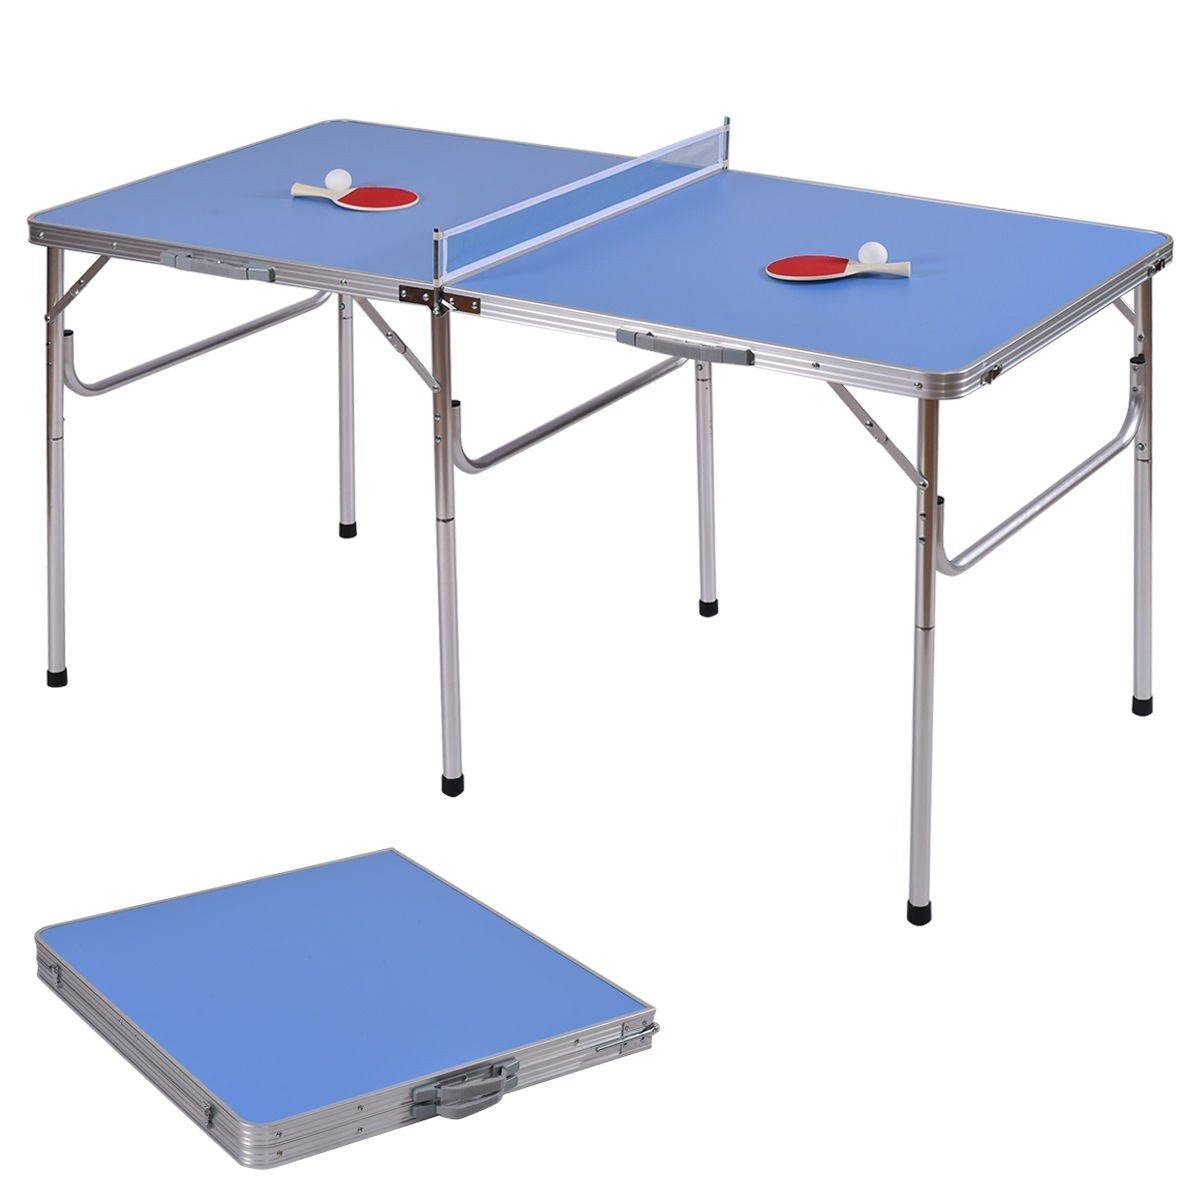 Svitlife 60'' Portable Tennis Ping Pong Folding Table w/Accessories Tennis Ping Pong Folding